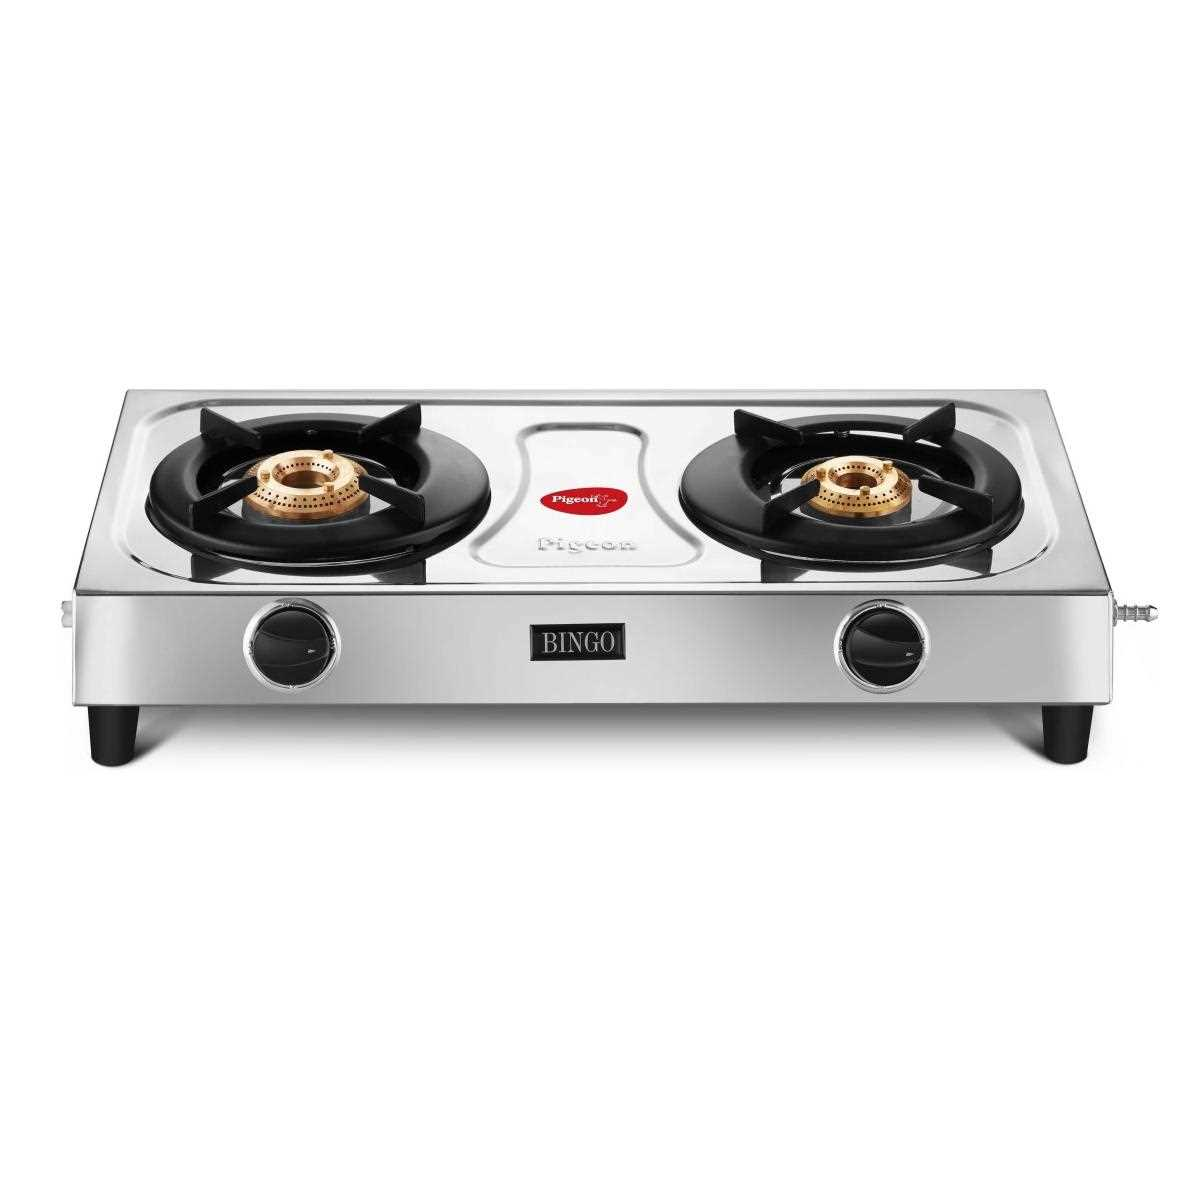 Gas Stove Prices Pigeon Gas Stove And Hob Price List In India 2017 Lowest